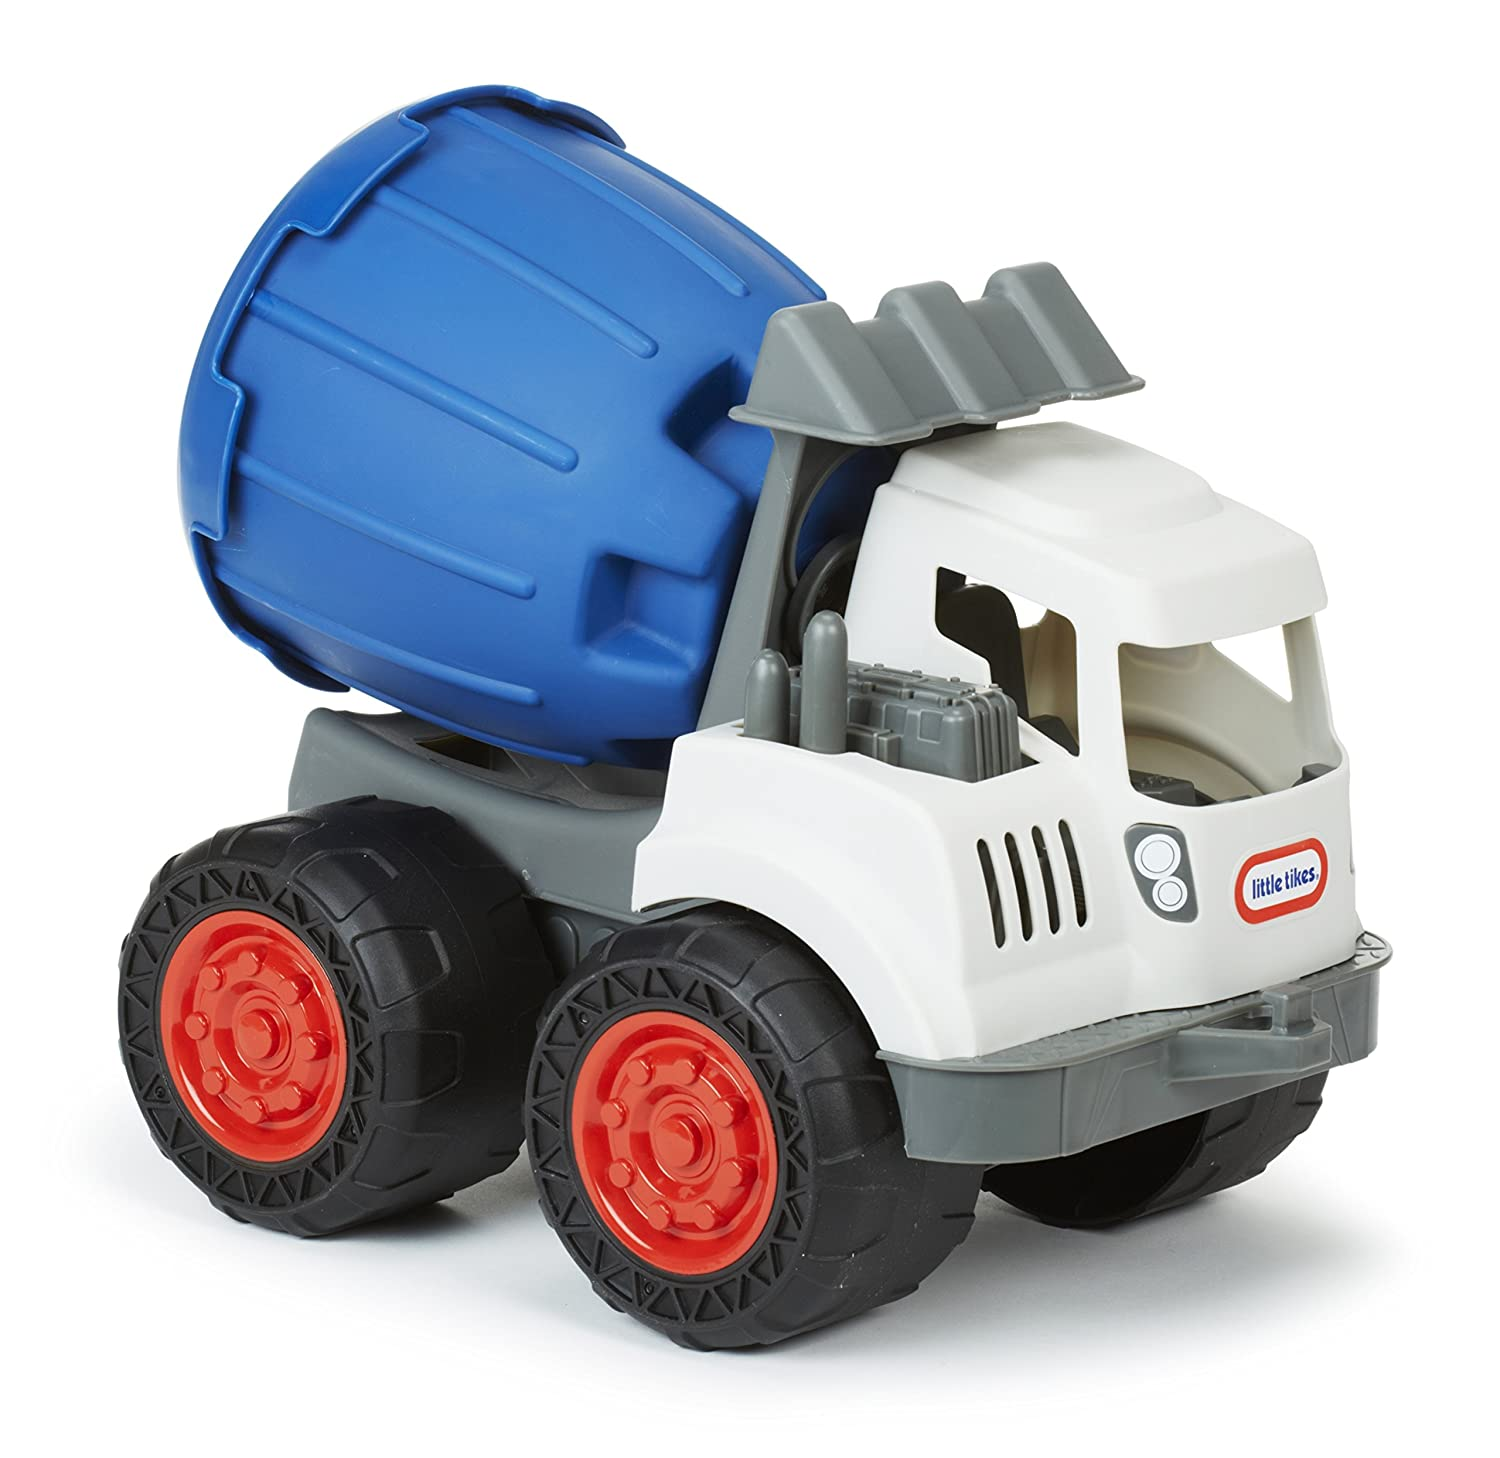 little tikes 643361 Dirt Digger 2-in-1 Cement Mixer